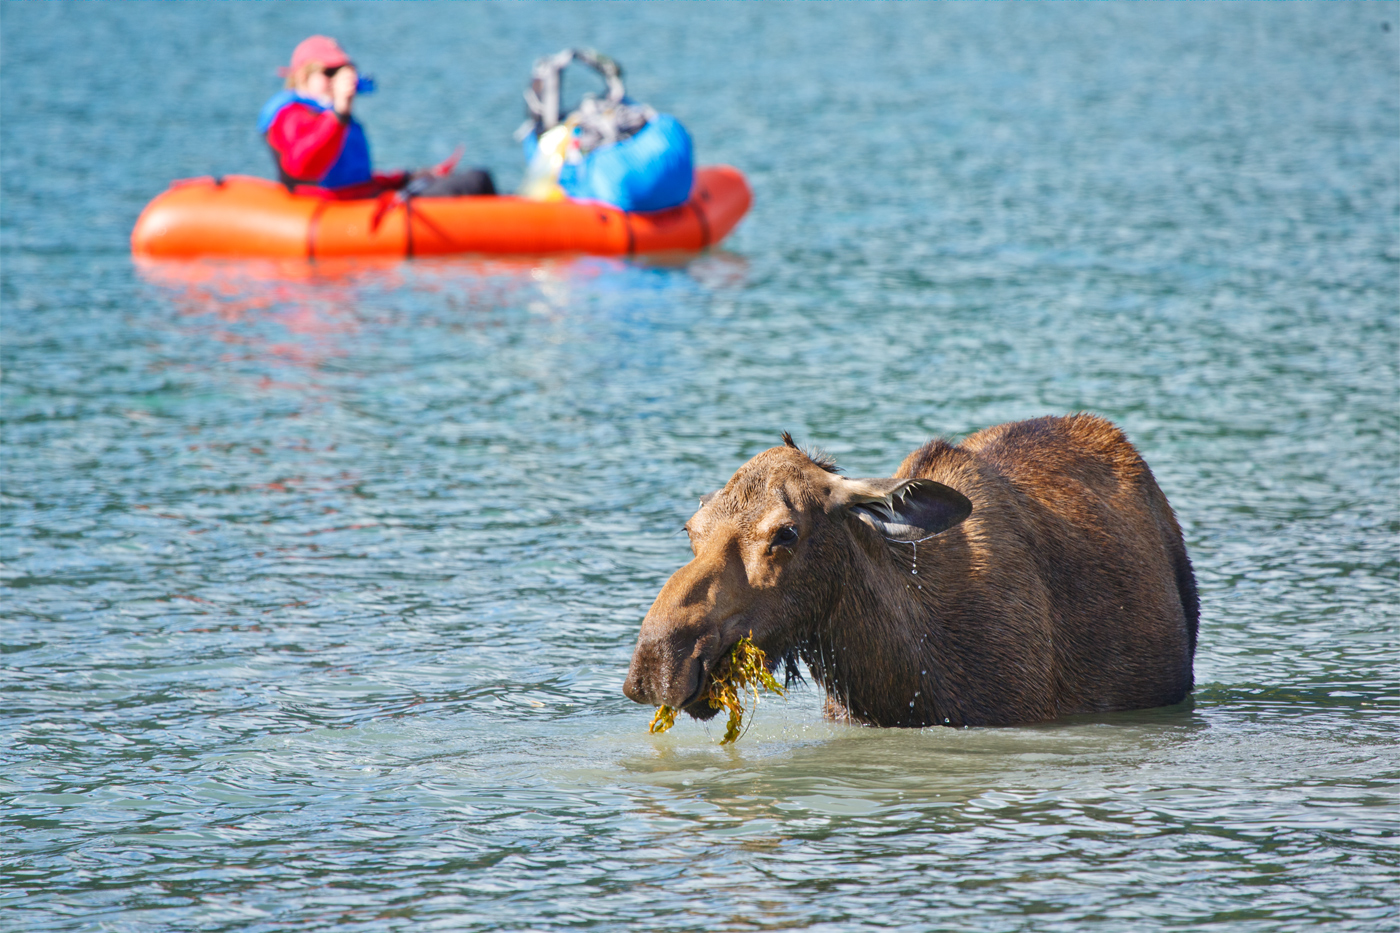 The best part of being a moose is you can eat dinner and take a bath at the same time. (Paul Nguyen)